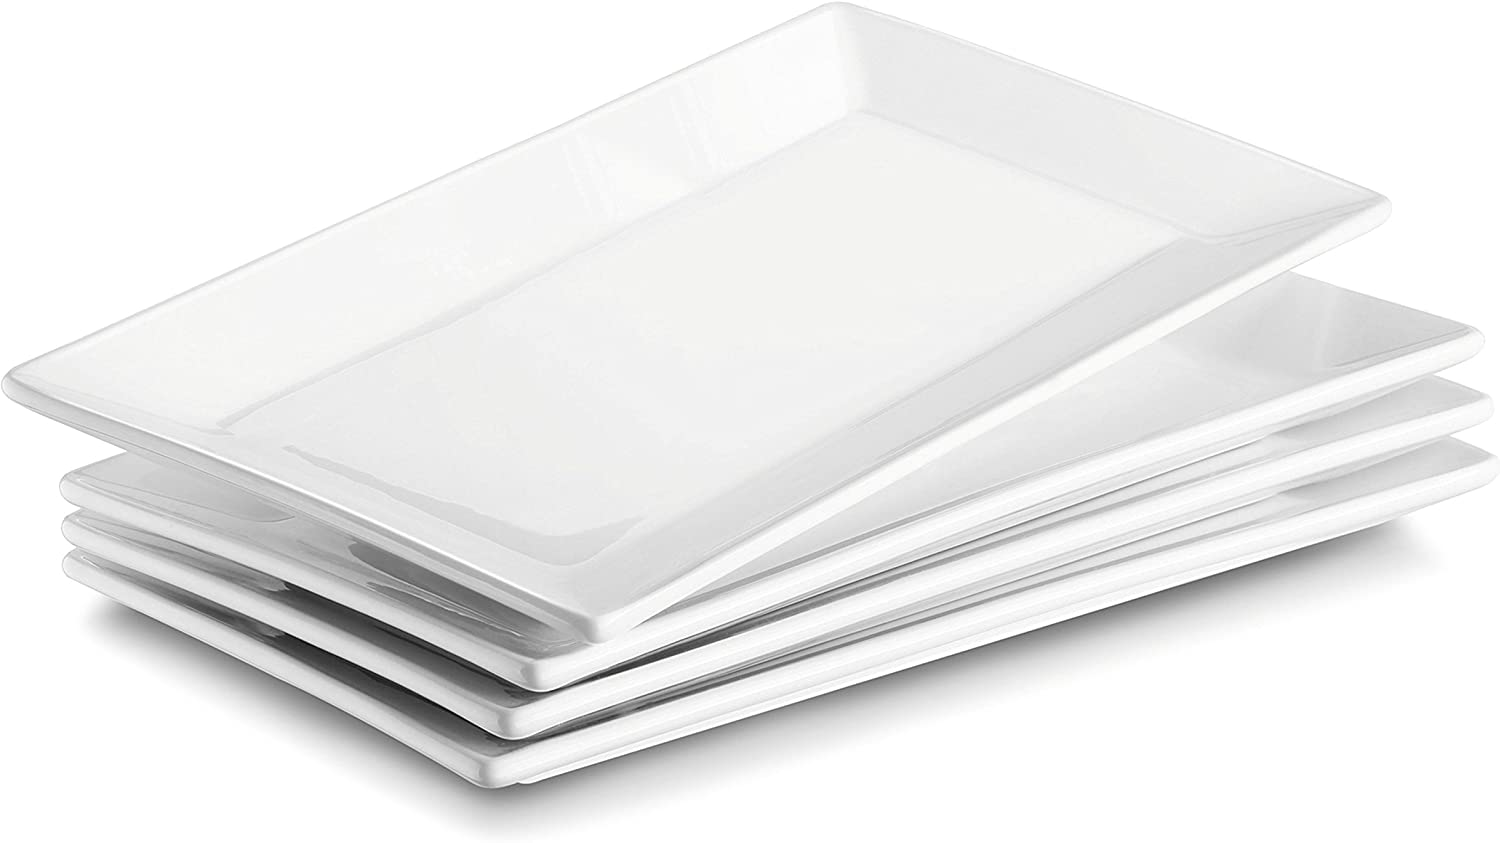 DOWAN Porcelain Rectangle, White Serving Platters, Restaurant Plates for Meat, Appetizers, Dessert, Sushi, Party, Set of 4, 9.7-Inches